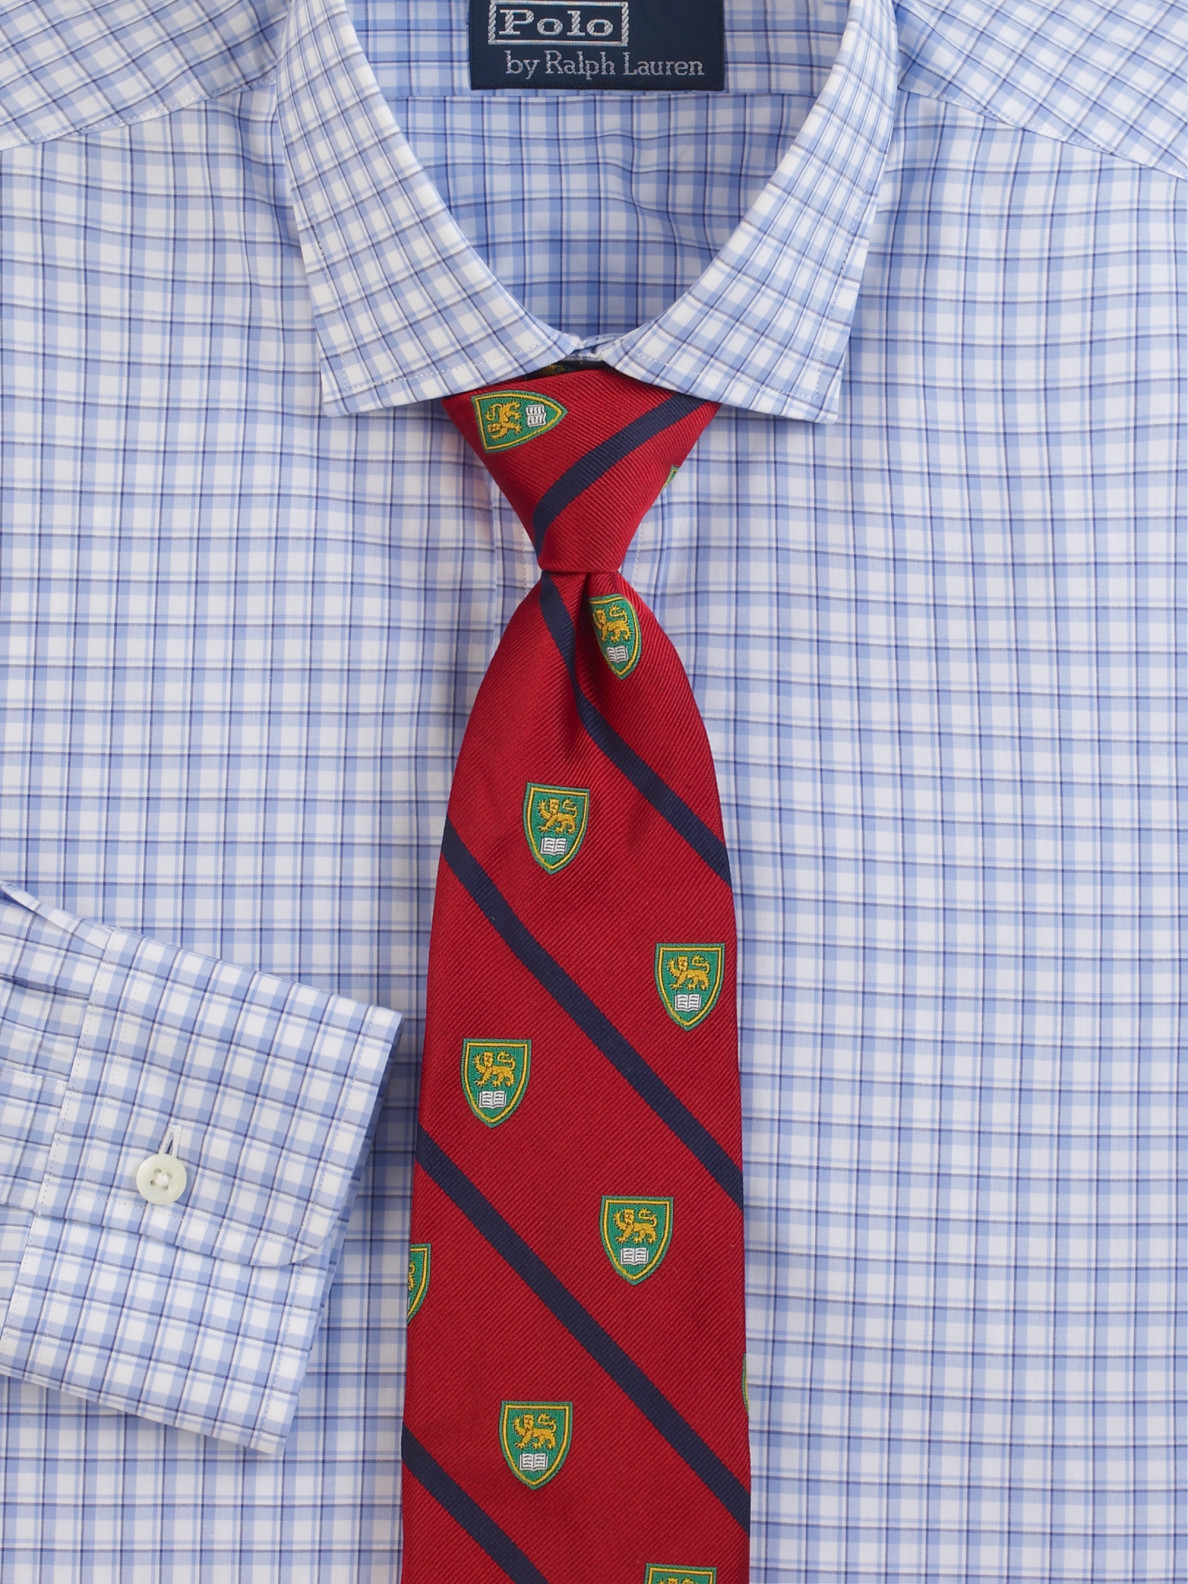 013f2bfcba4d Polo Ralph Lauren Printed Silk Tie in Red for Men - Lyst